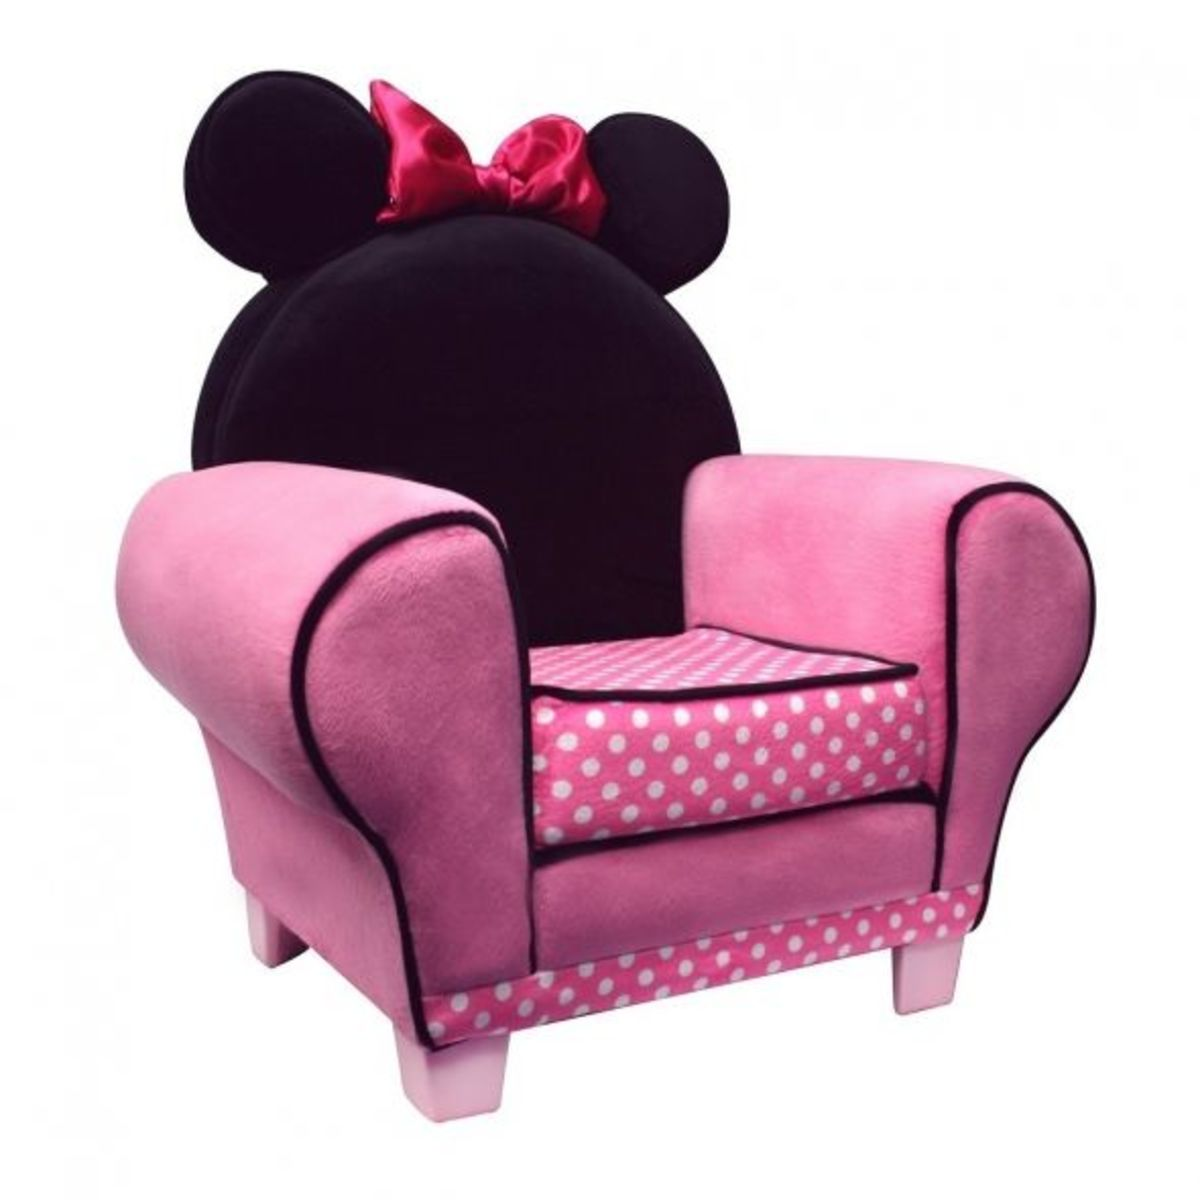 Pink and Black Minnie Mouse Chair